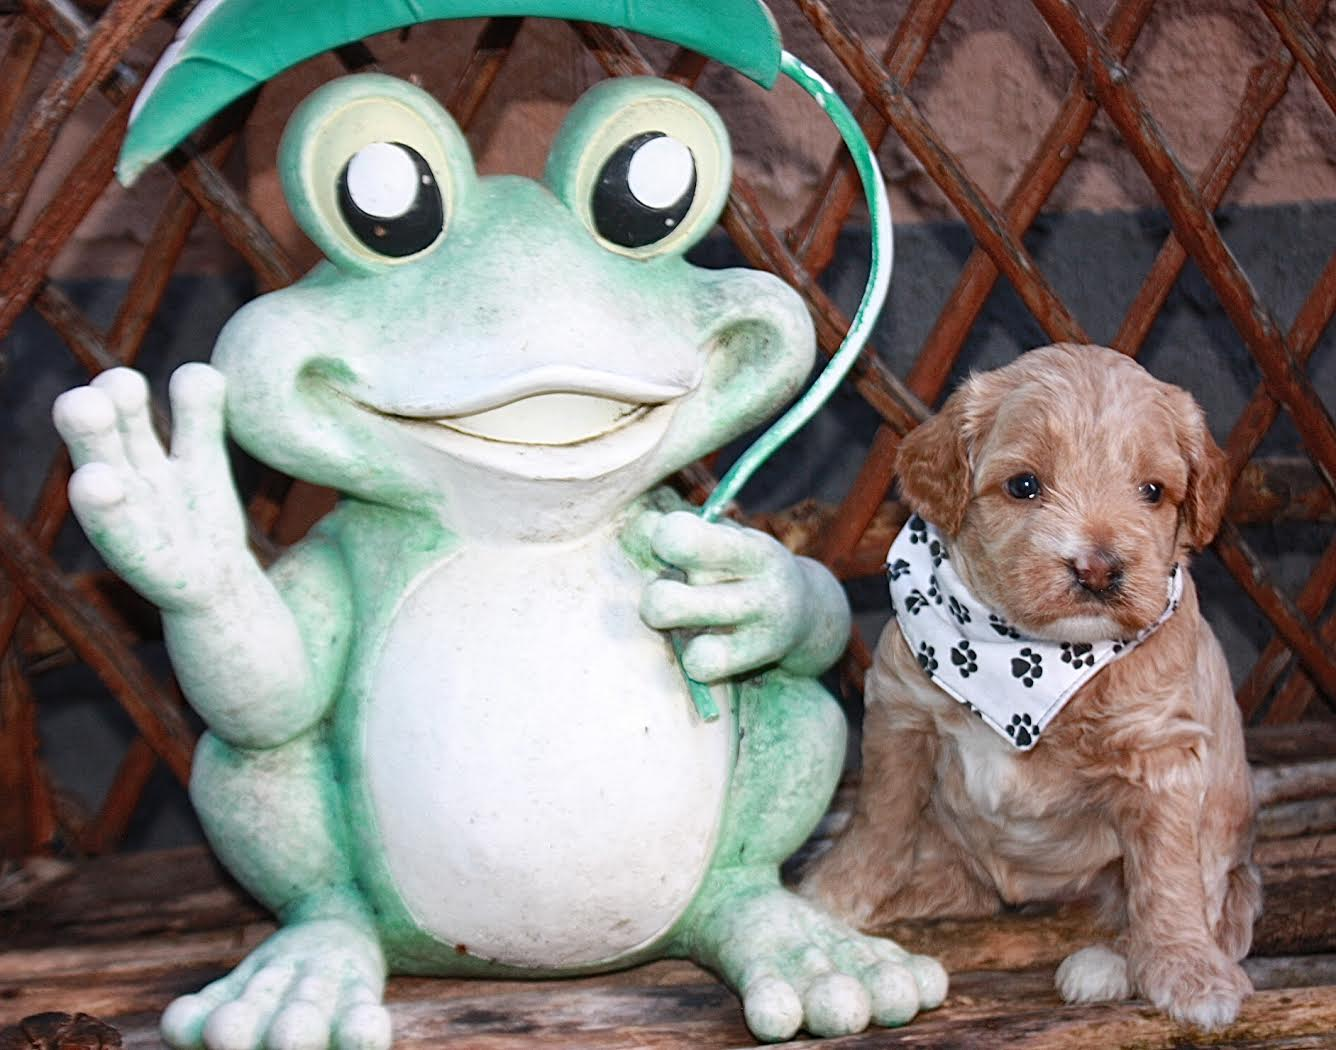 Madame White and her froggy friend!